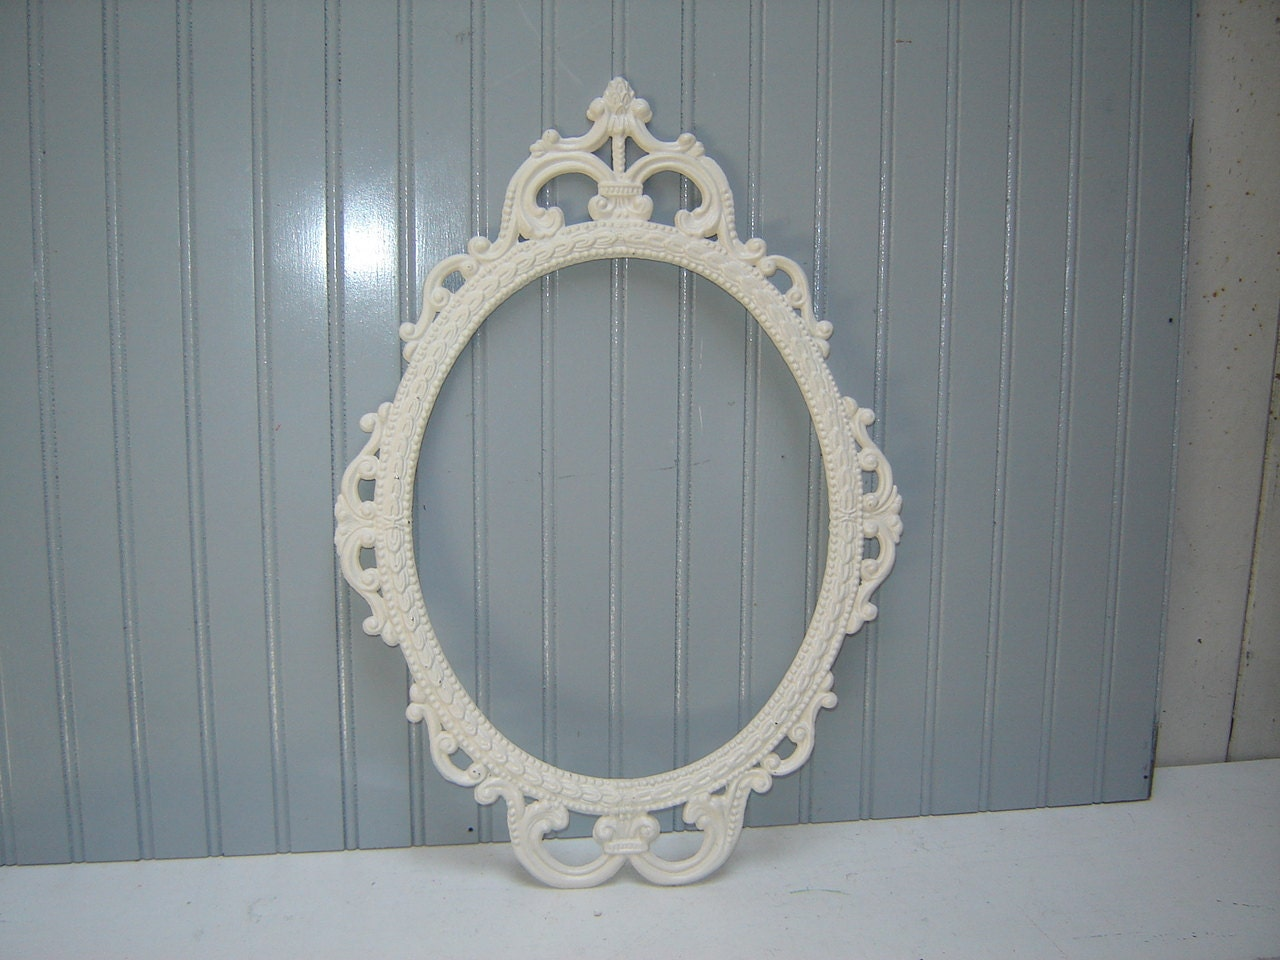 Ornate Oval Frame Large Empty Metal Frame Painted Creamy